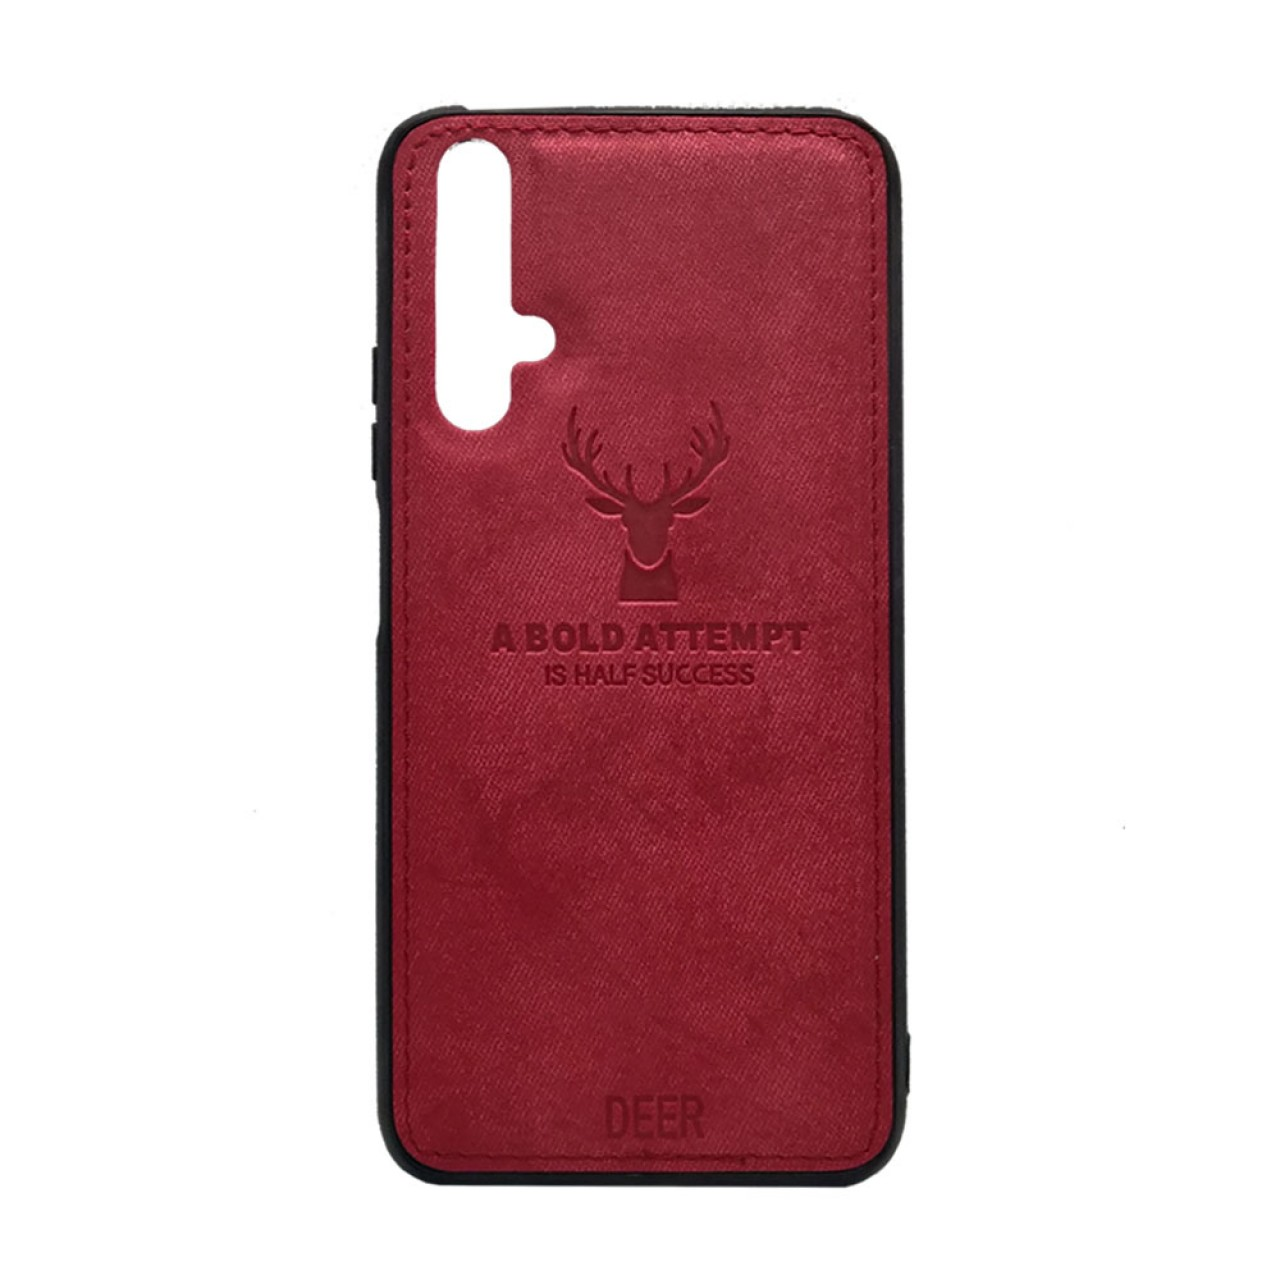 DEER CLOTH BACK CASE FOR HUAWEI NOVA 5T - RED